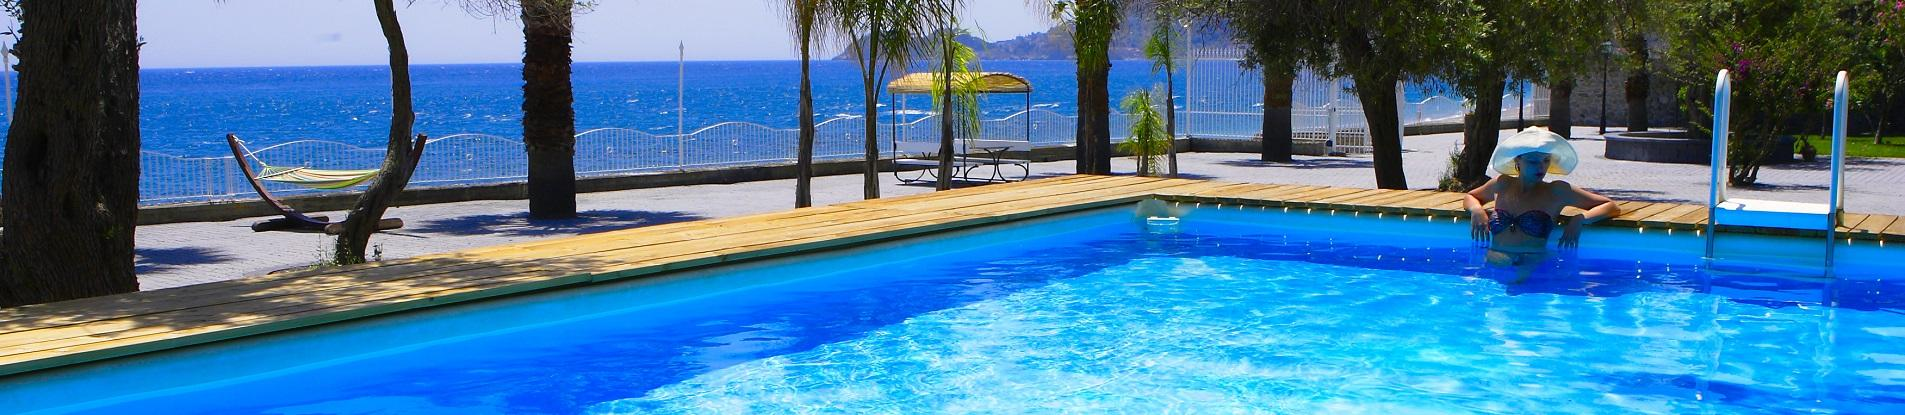 Villas in Sicily with pools near Taormina